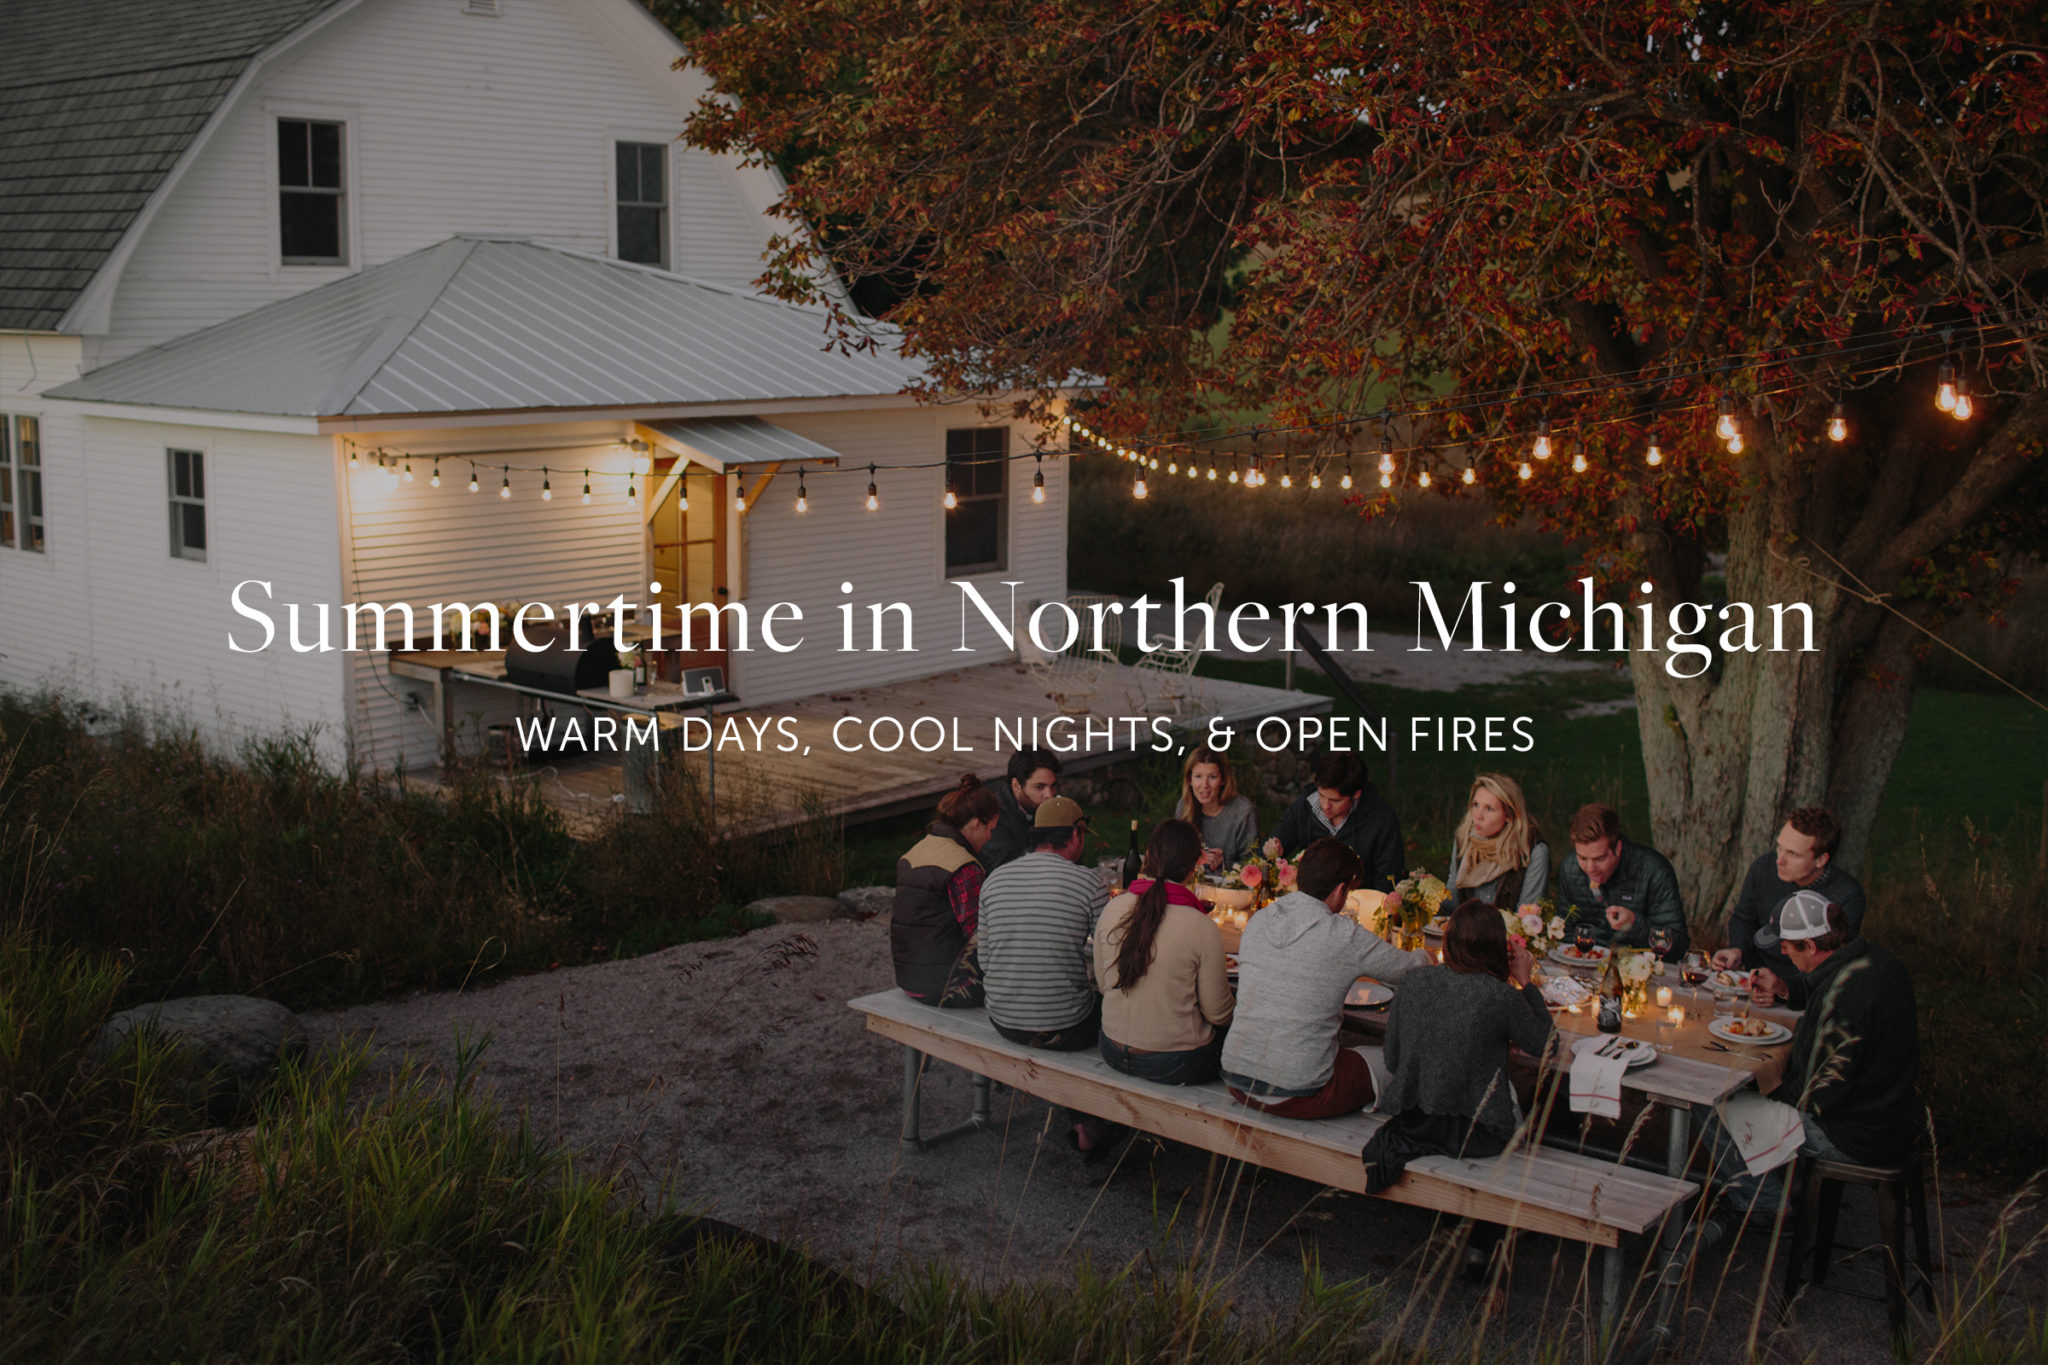 Summertime in Northern Michigan | The Fresh Exchange